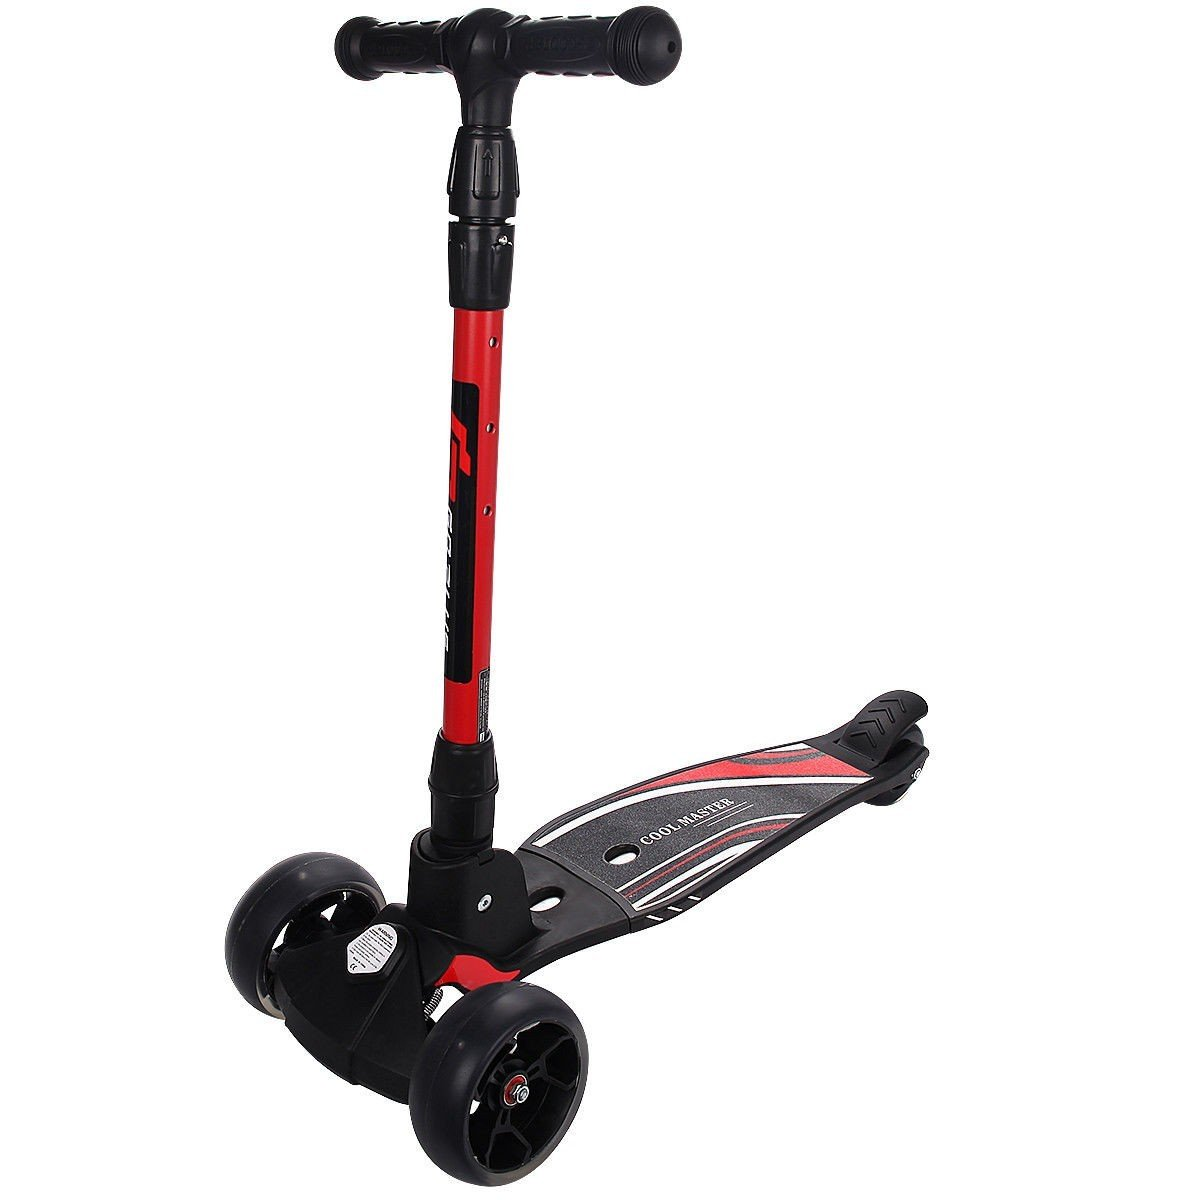 Folding Aluminum Adjustable Height LED 3 Wheels T-Bar Kick Scooter - Red